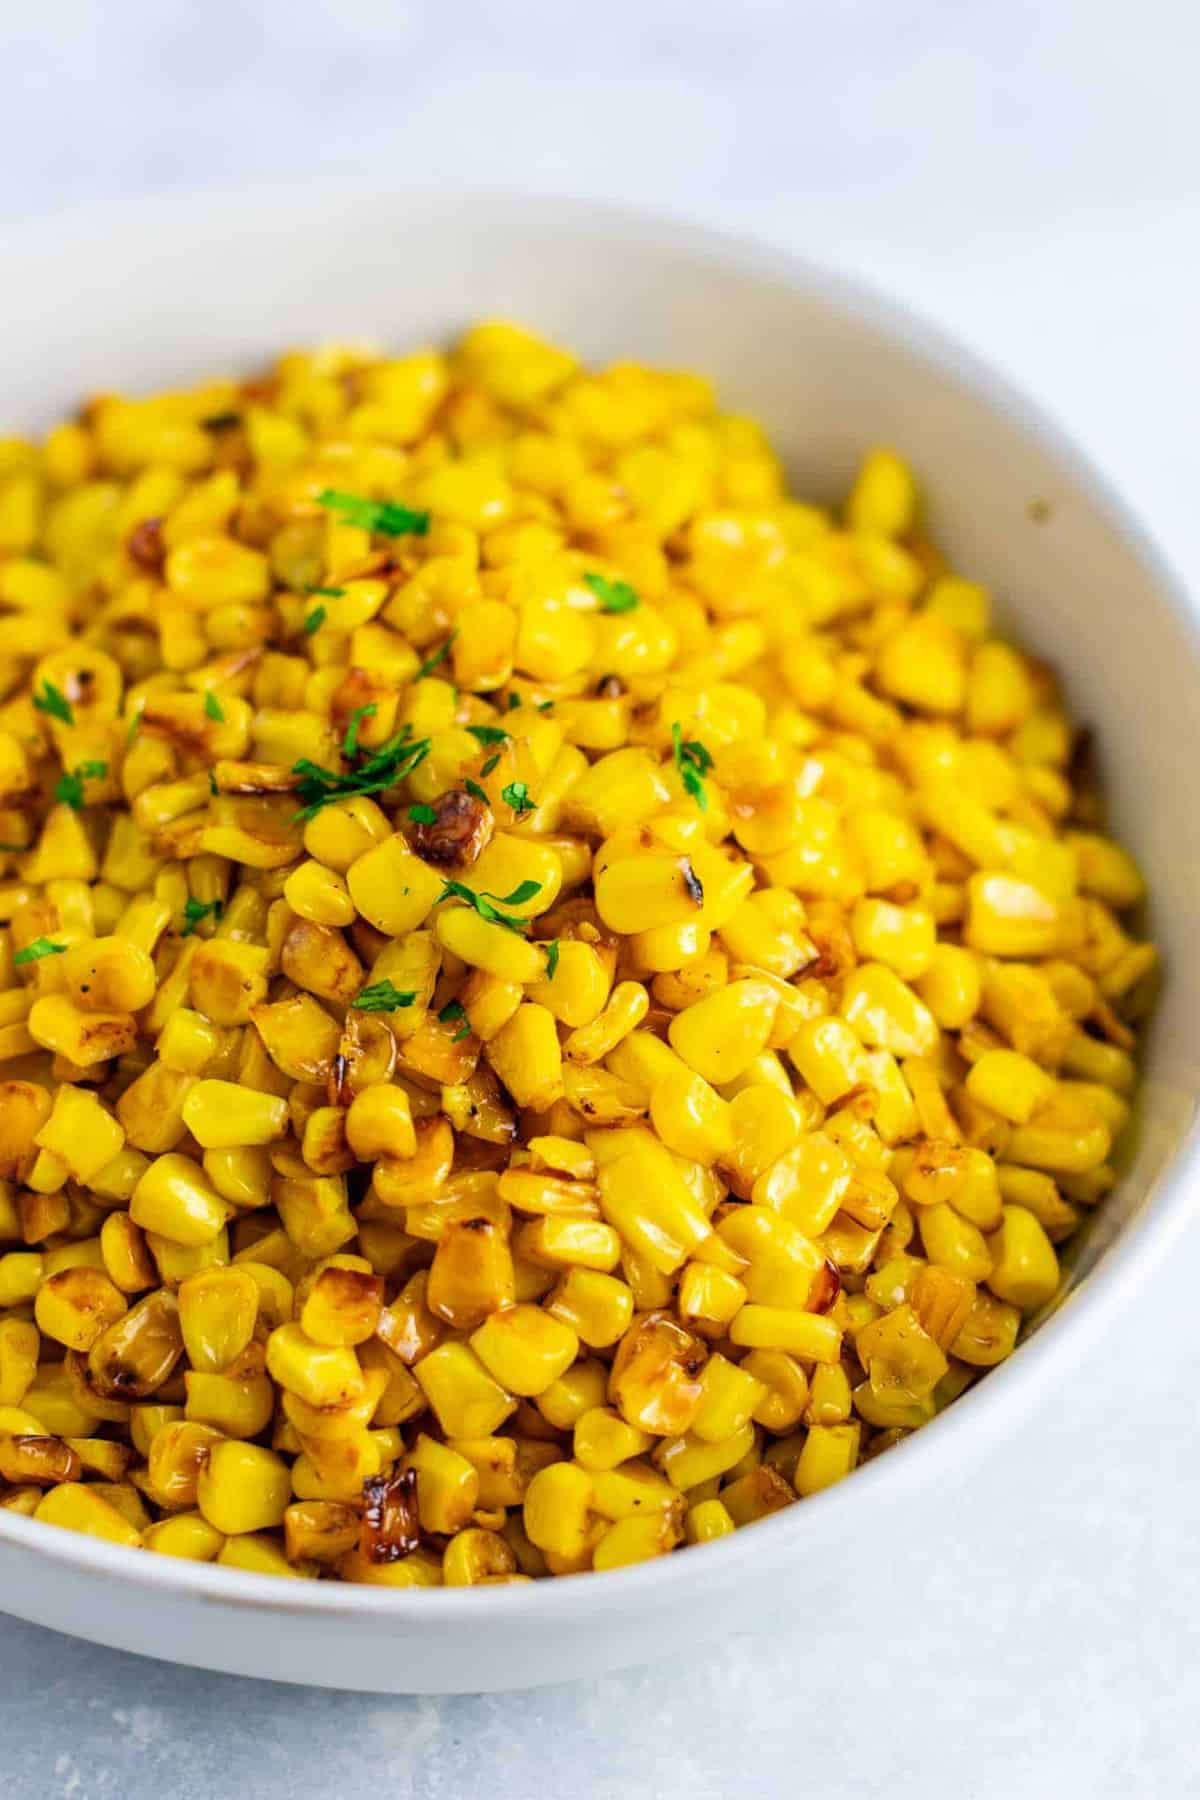 Corn recipes for Thanksgiving - Best skillet corn recipe –the BEST side dish and even corn haters will love it. you will never make corn a different way after you try this! #skilletcorn #sidedish #dinner #dinnerrecipe #glutenfree #corn #easysidedish